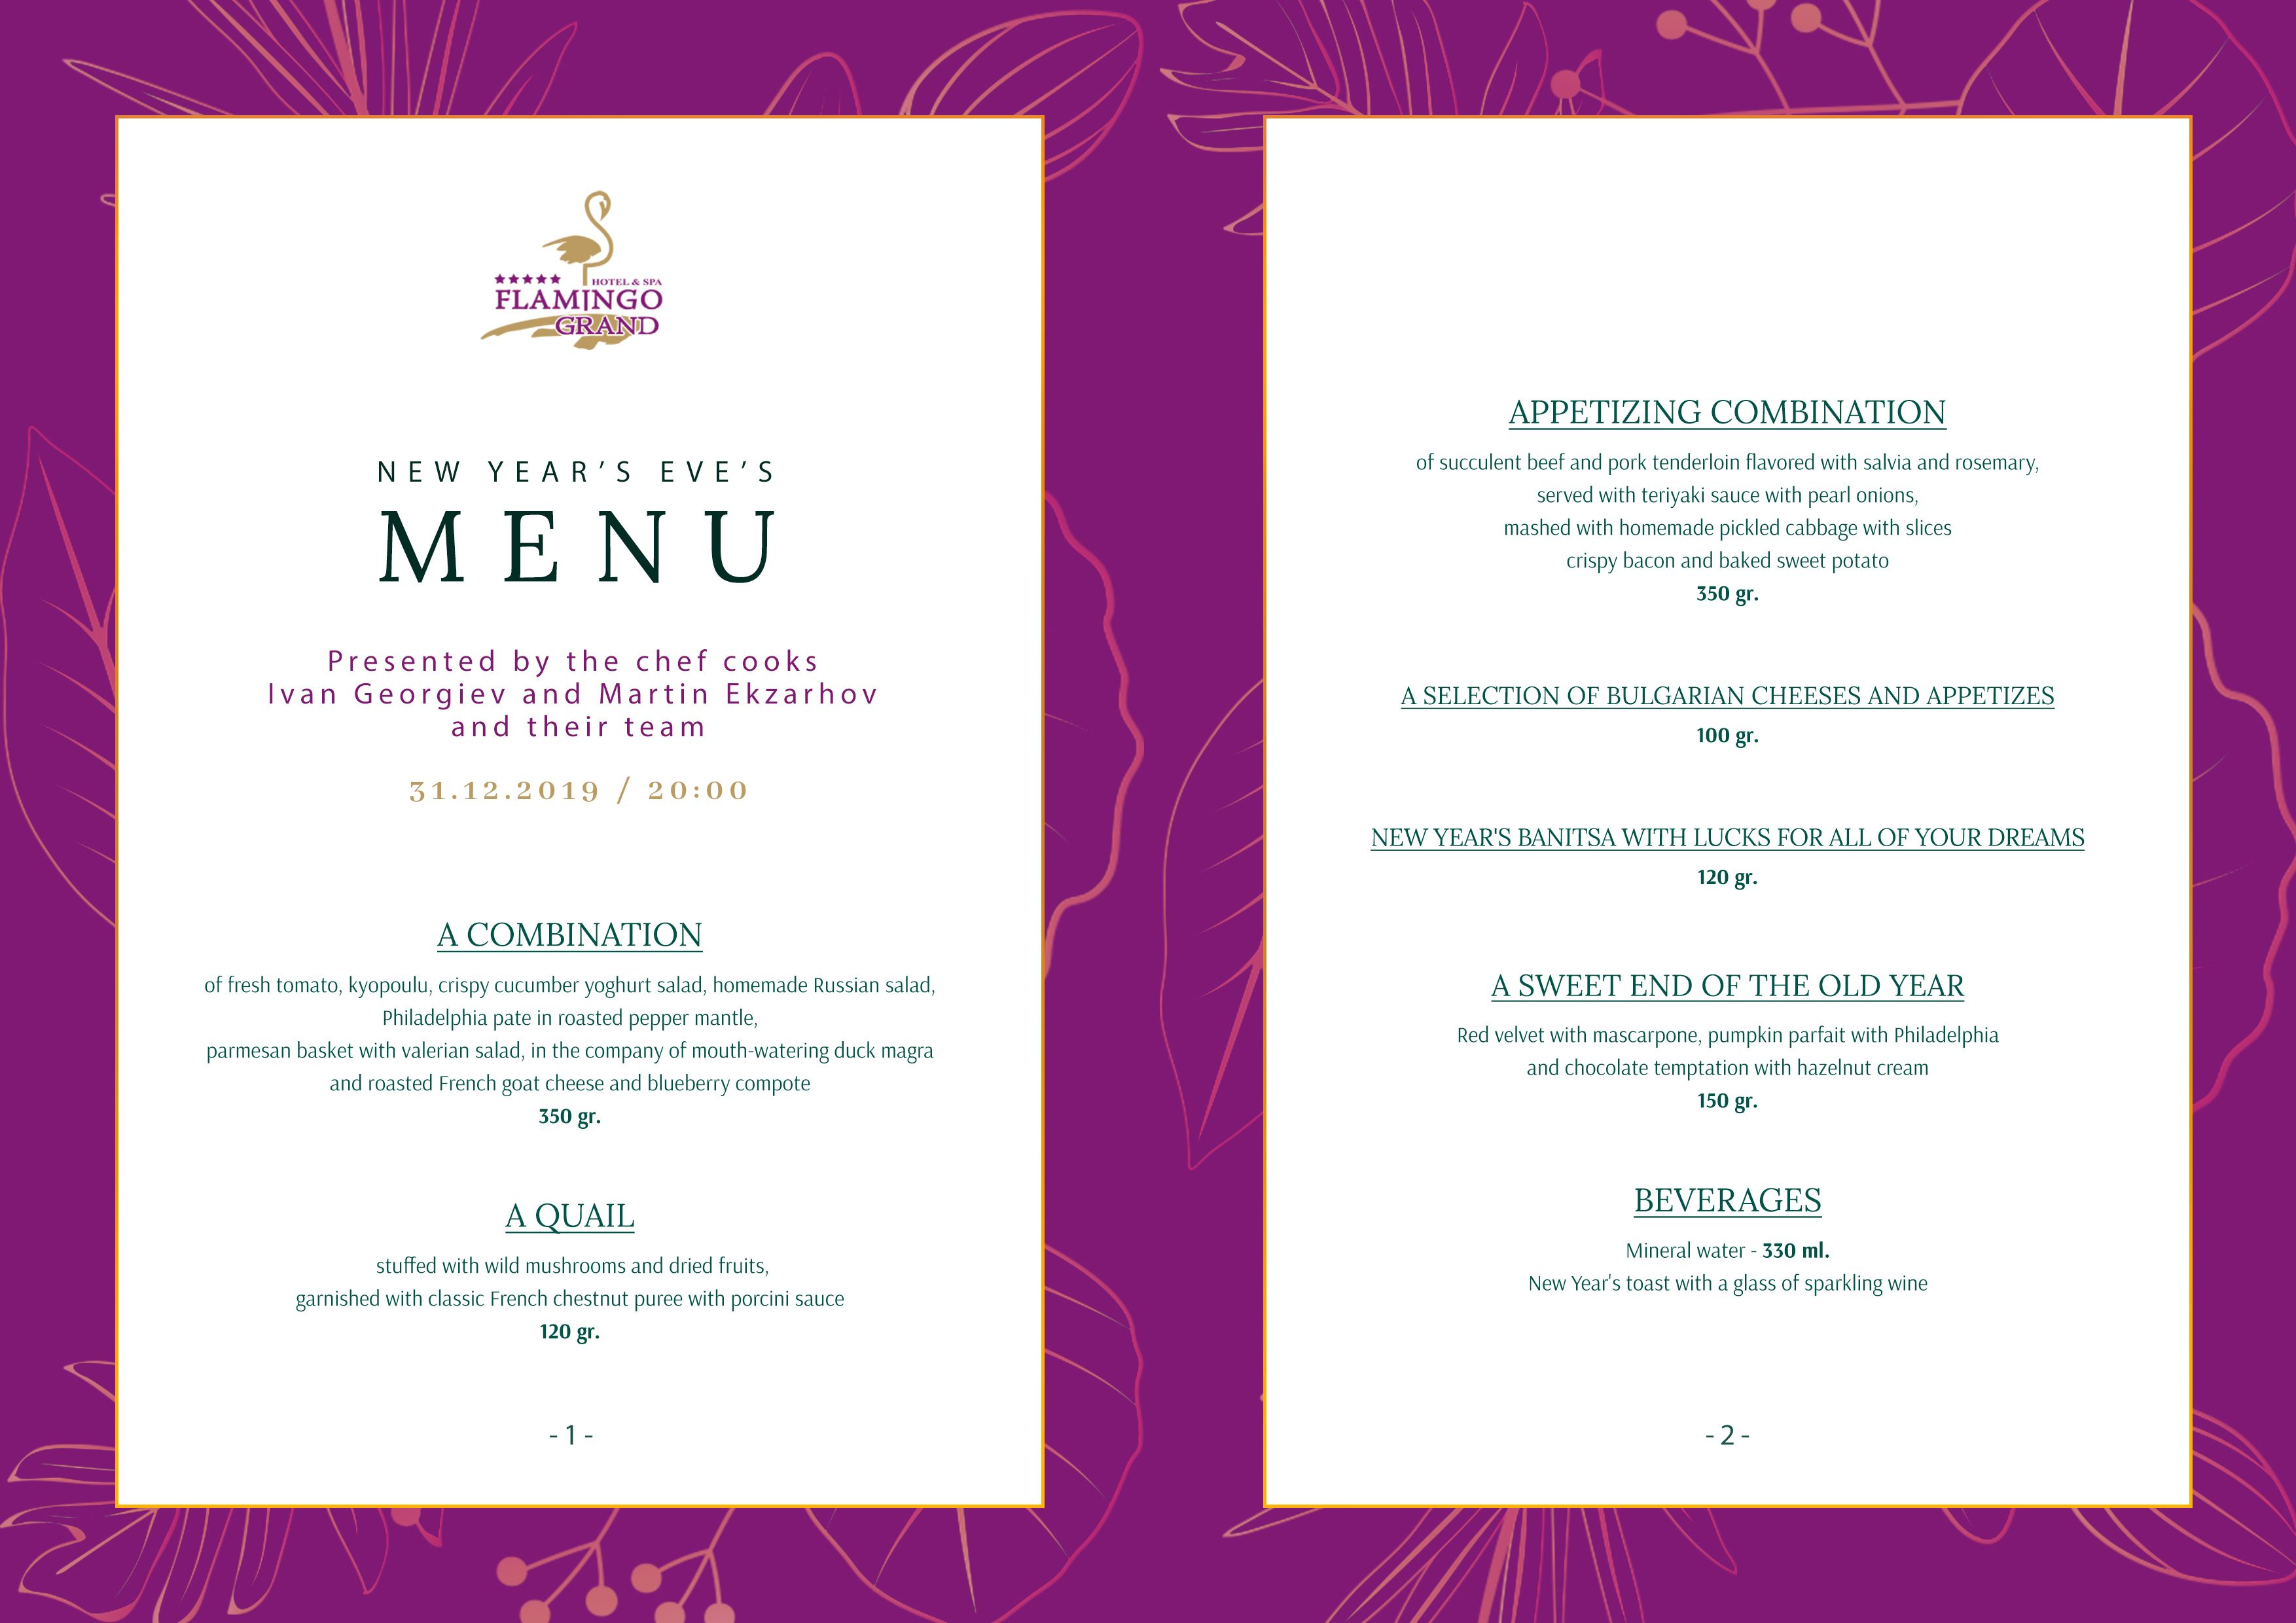 NEW YEAR'S EVE'S MENU FLAMINGO GRAND HOTEL & SPA